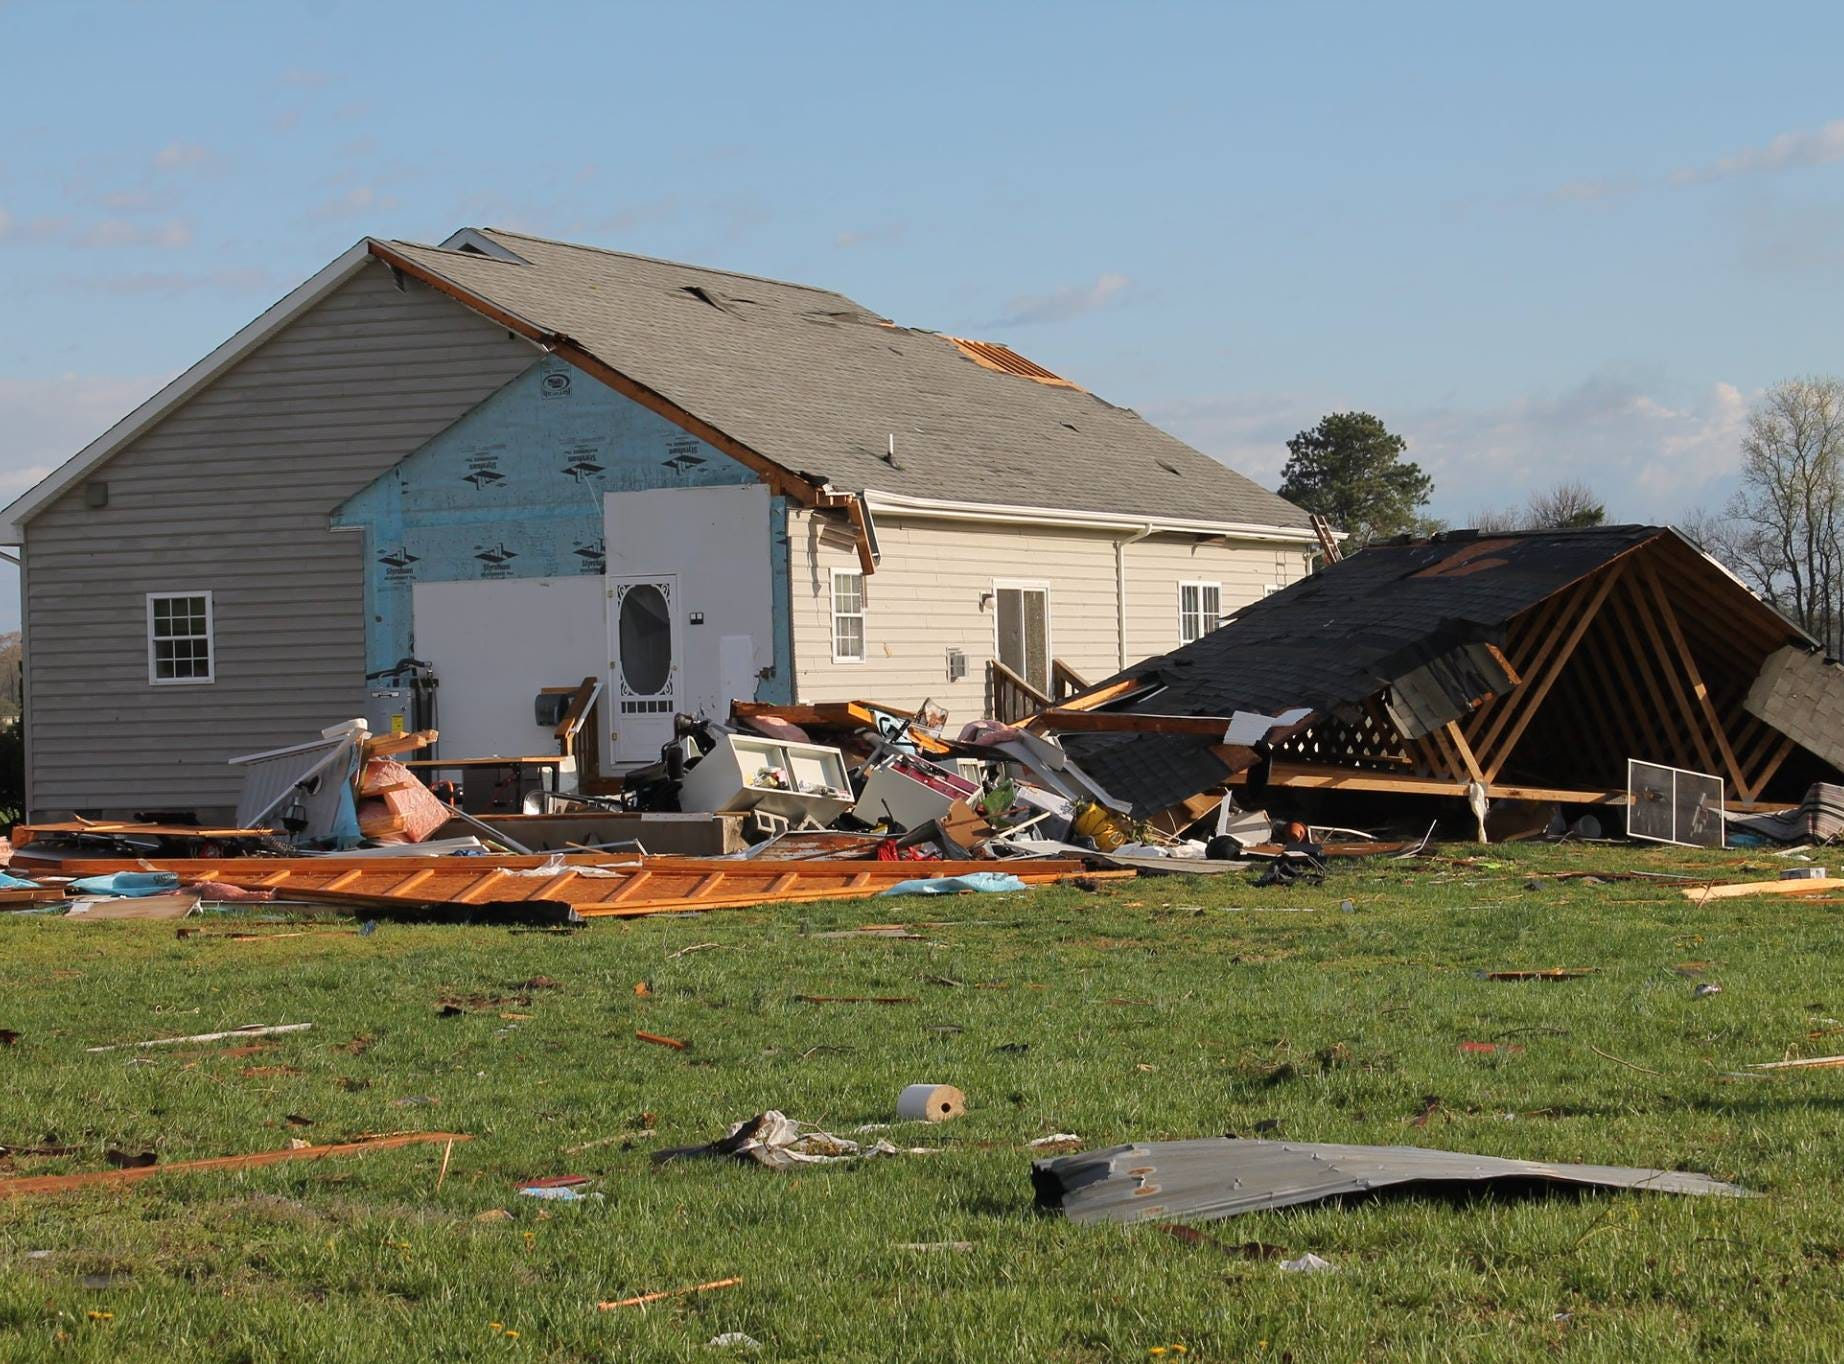 Storm damage near Seaford Monday, April 15, 2019, after overnight storms.